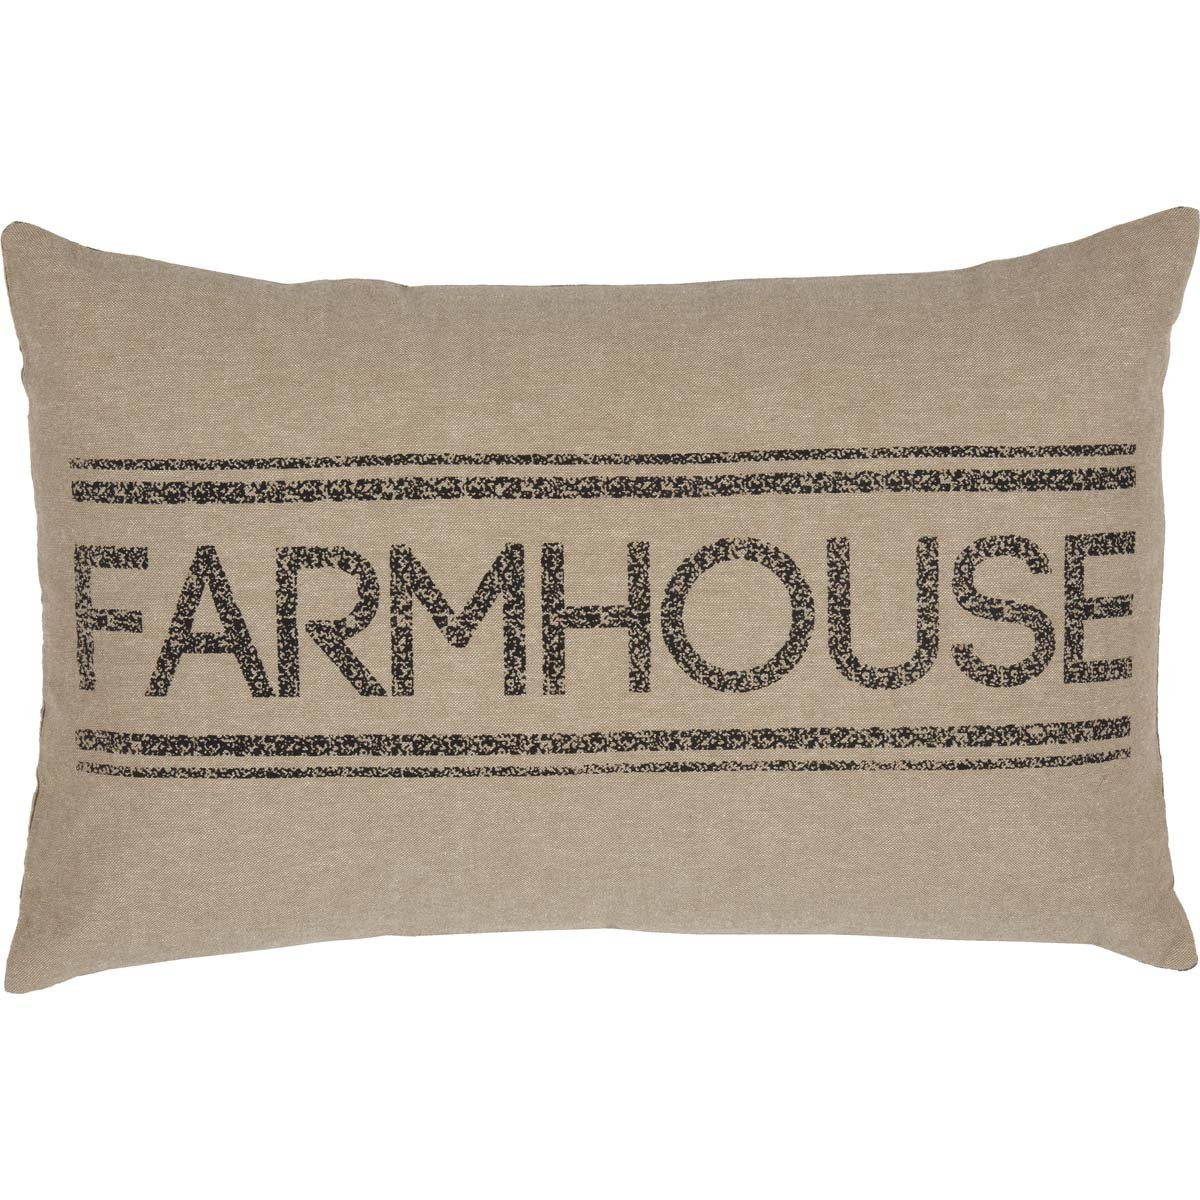 farmhouse pillow linen grainstripe farmhouse style pillow